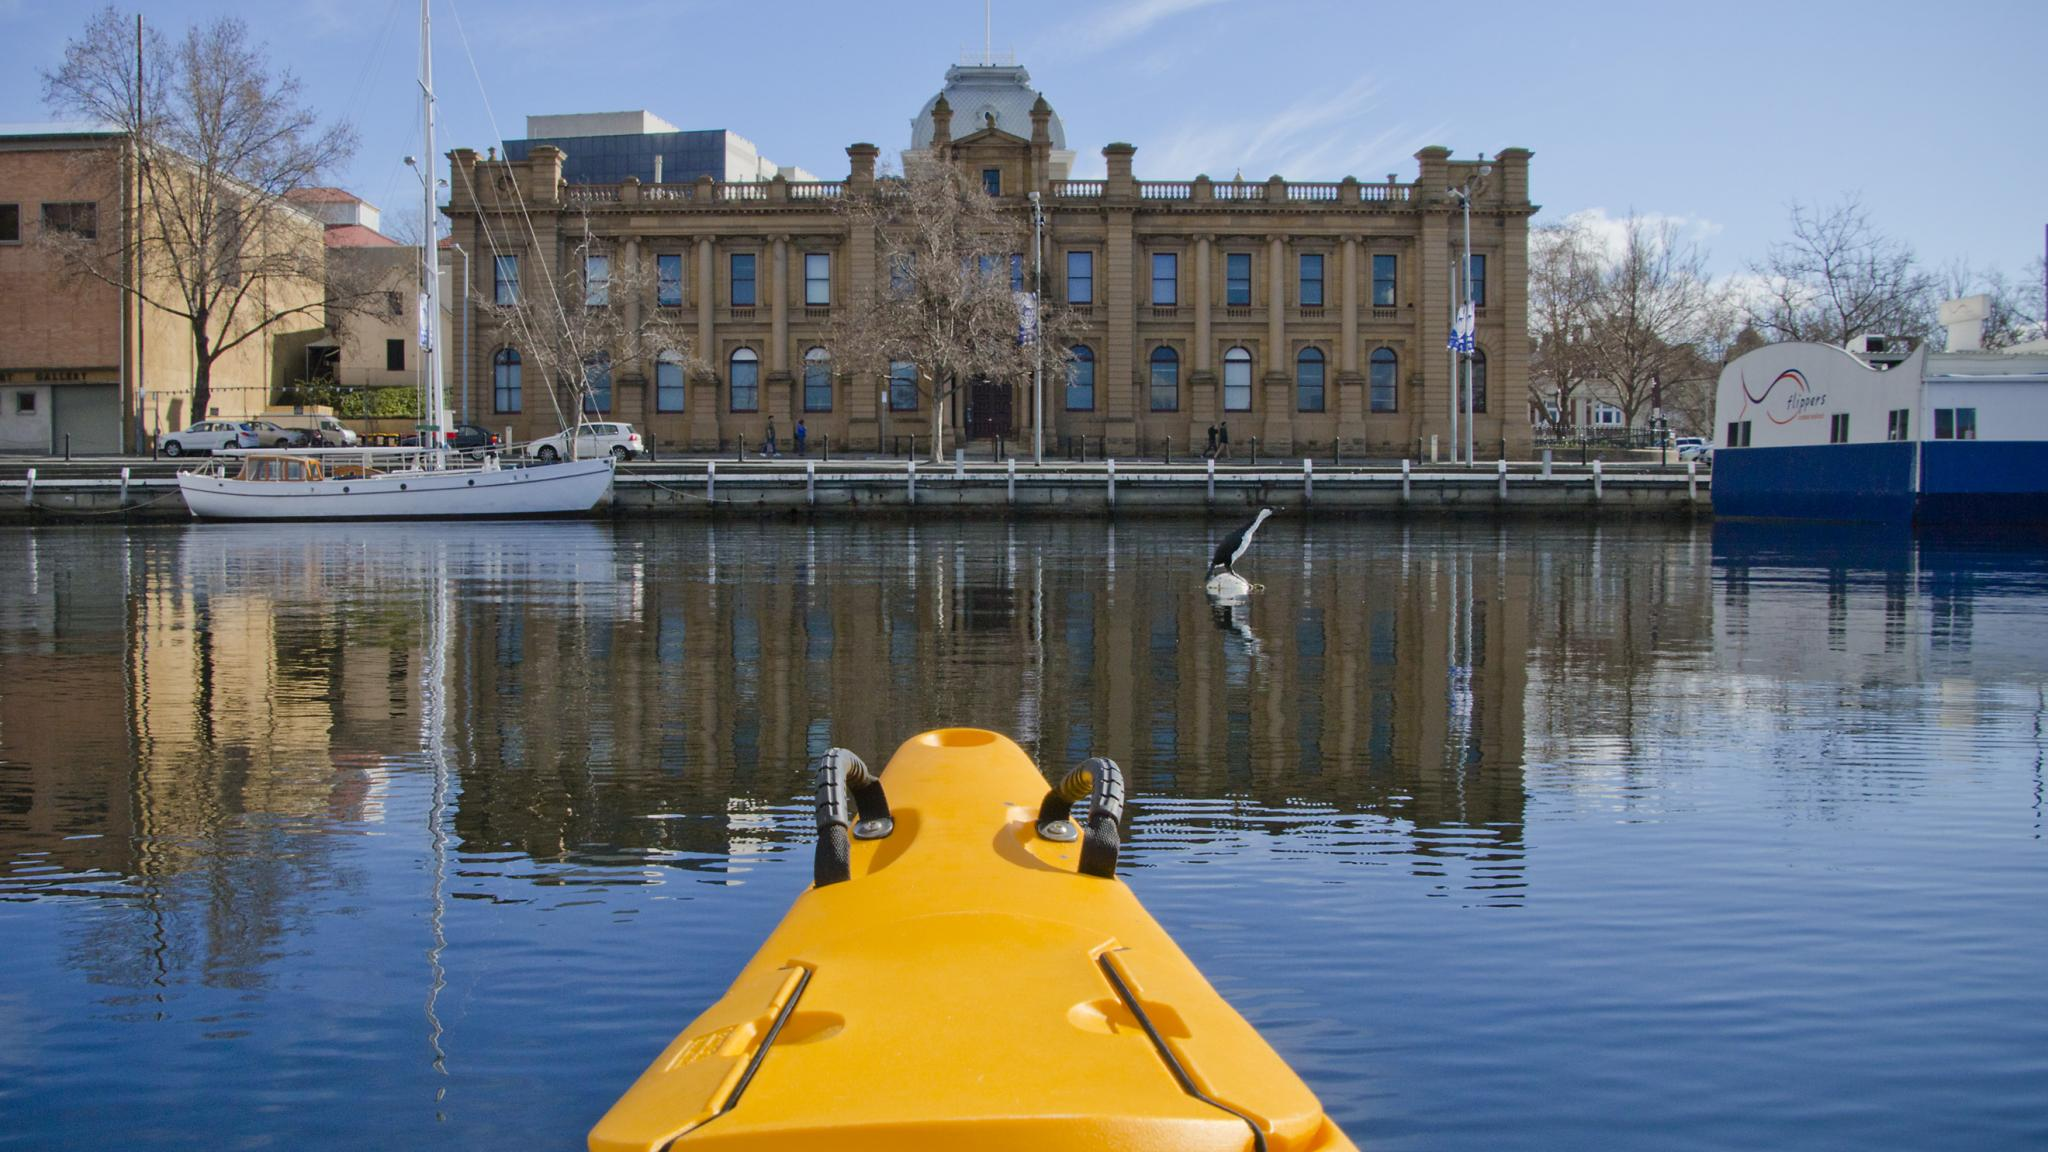 Roaring 40s Kayaking - Kayaking Hobart - One of the best things to do in Hobart